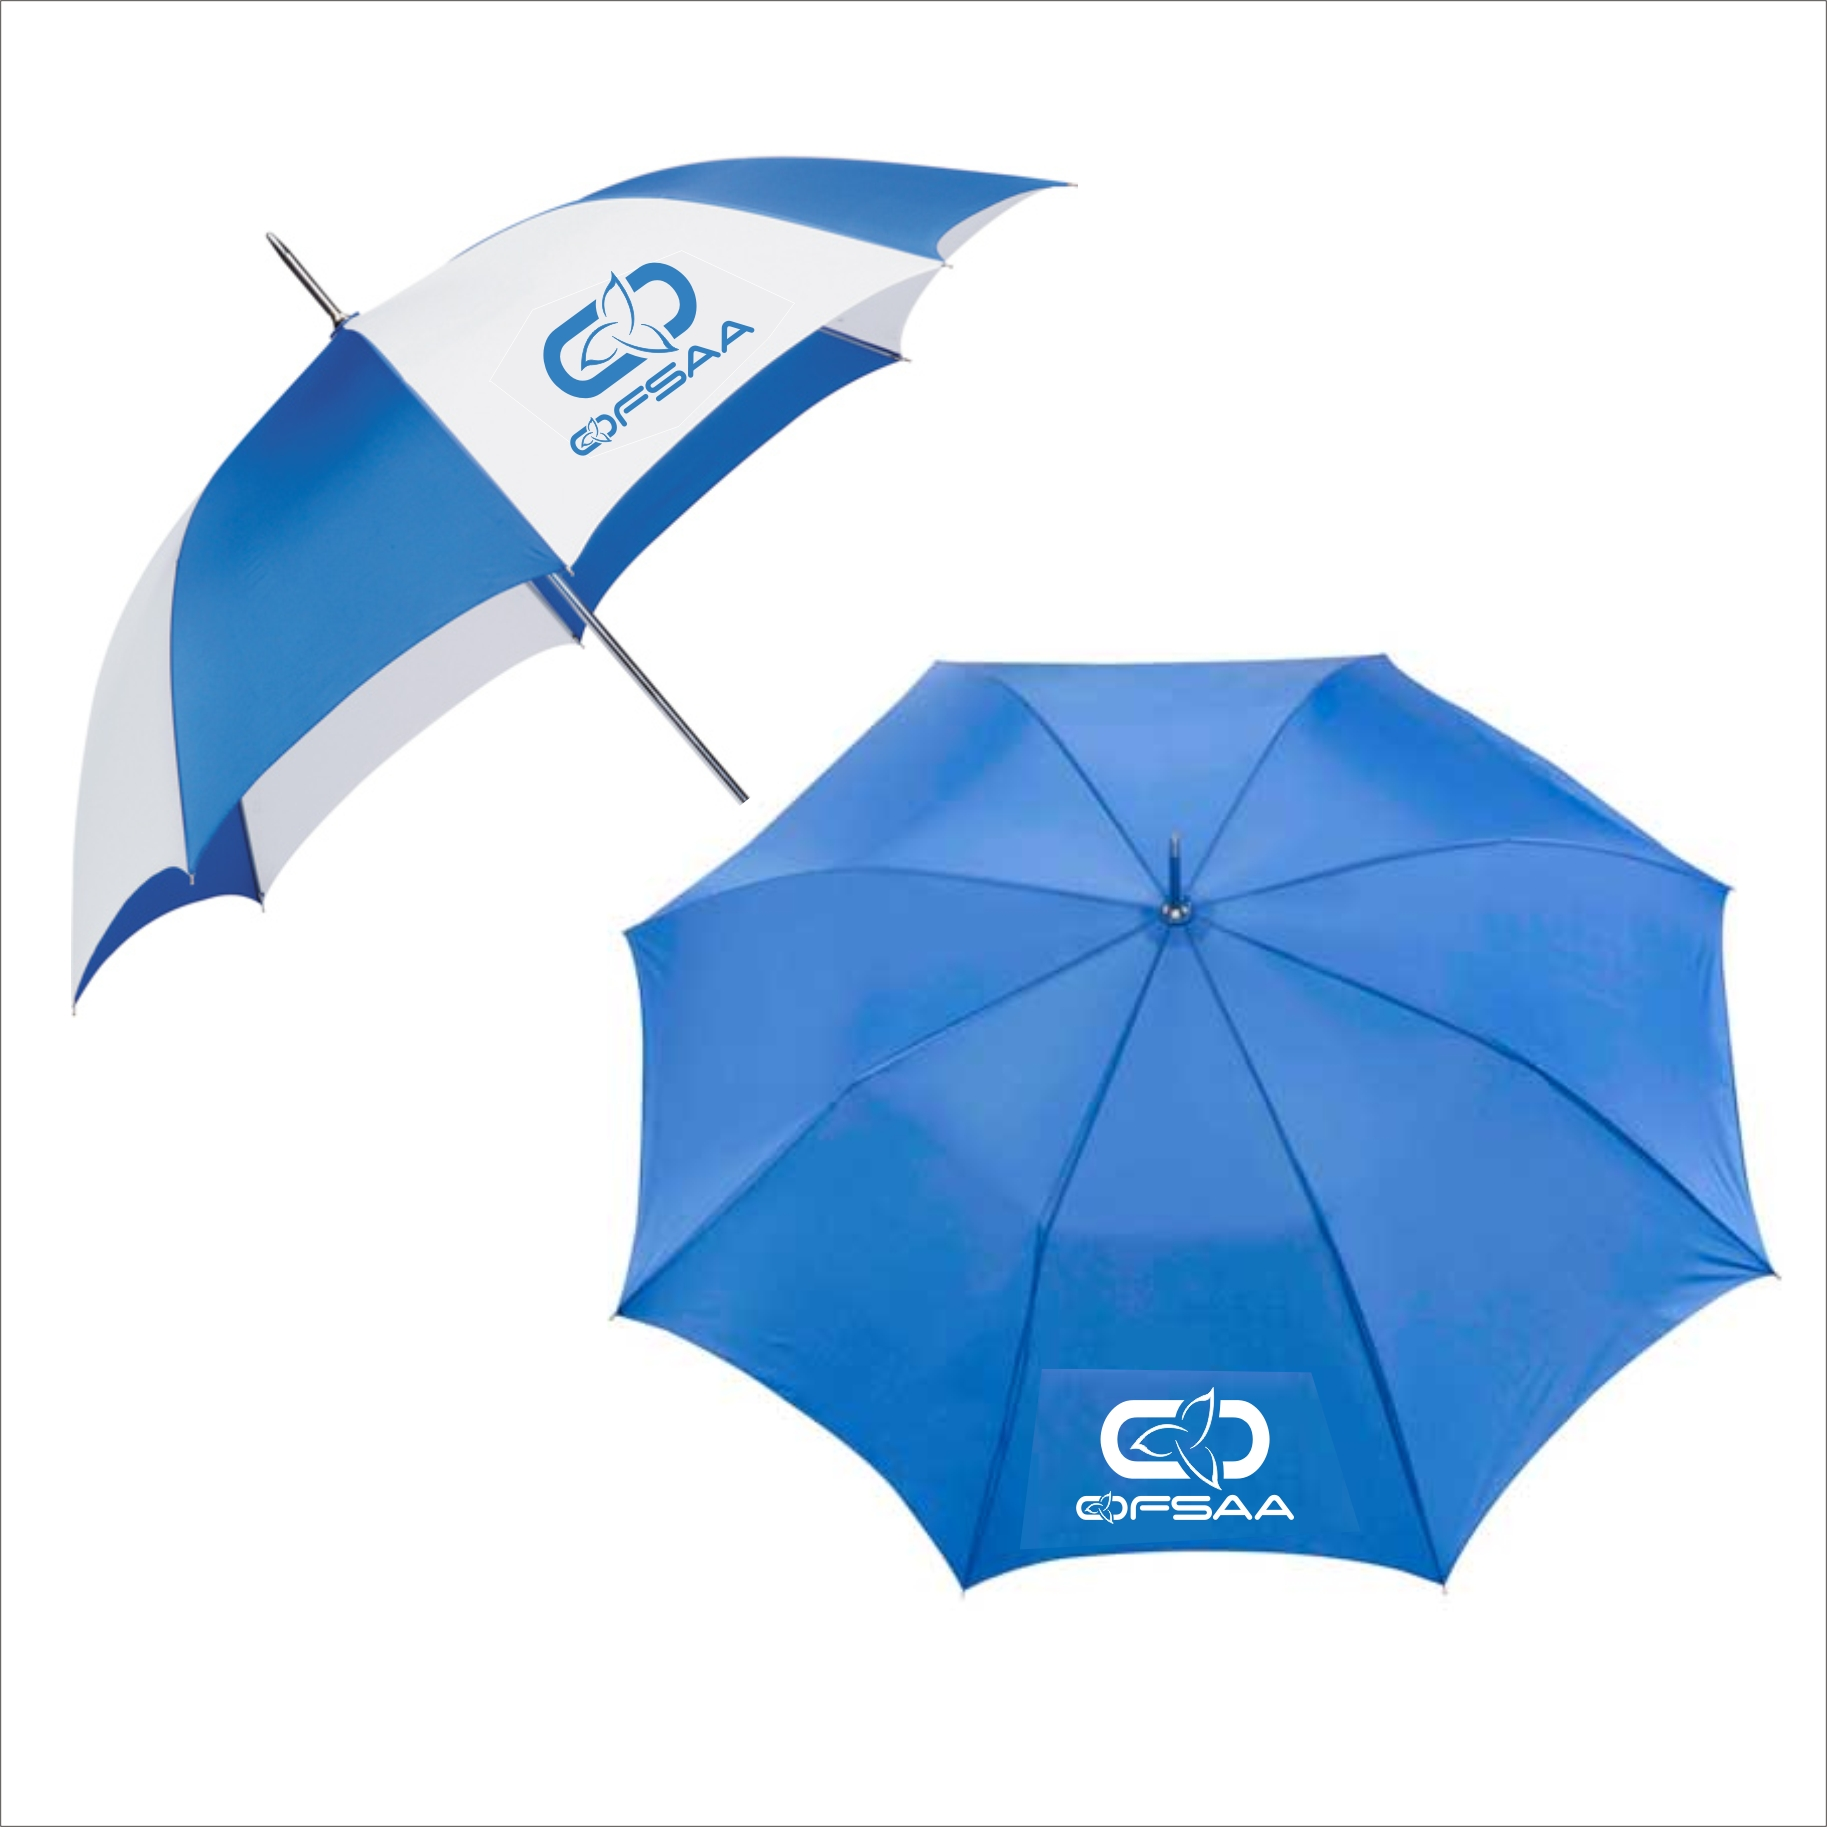 OFSAA Umbrella.jpg